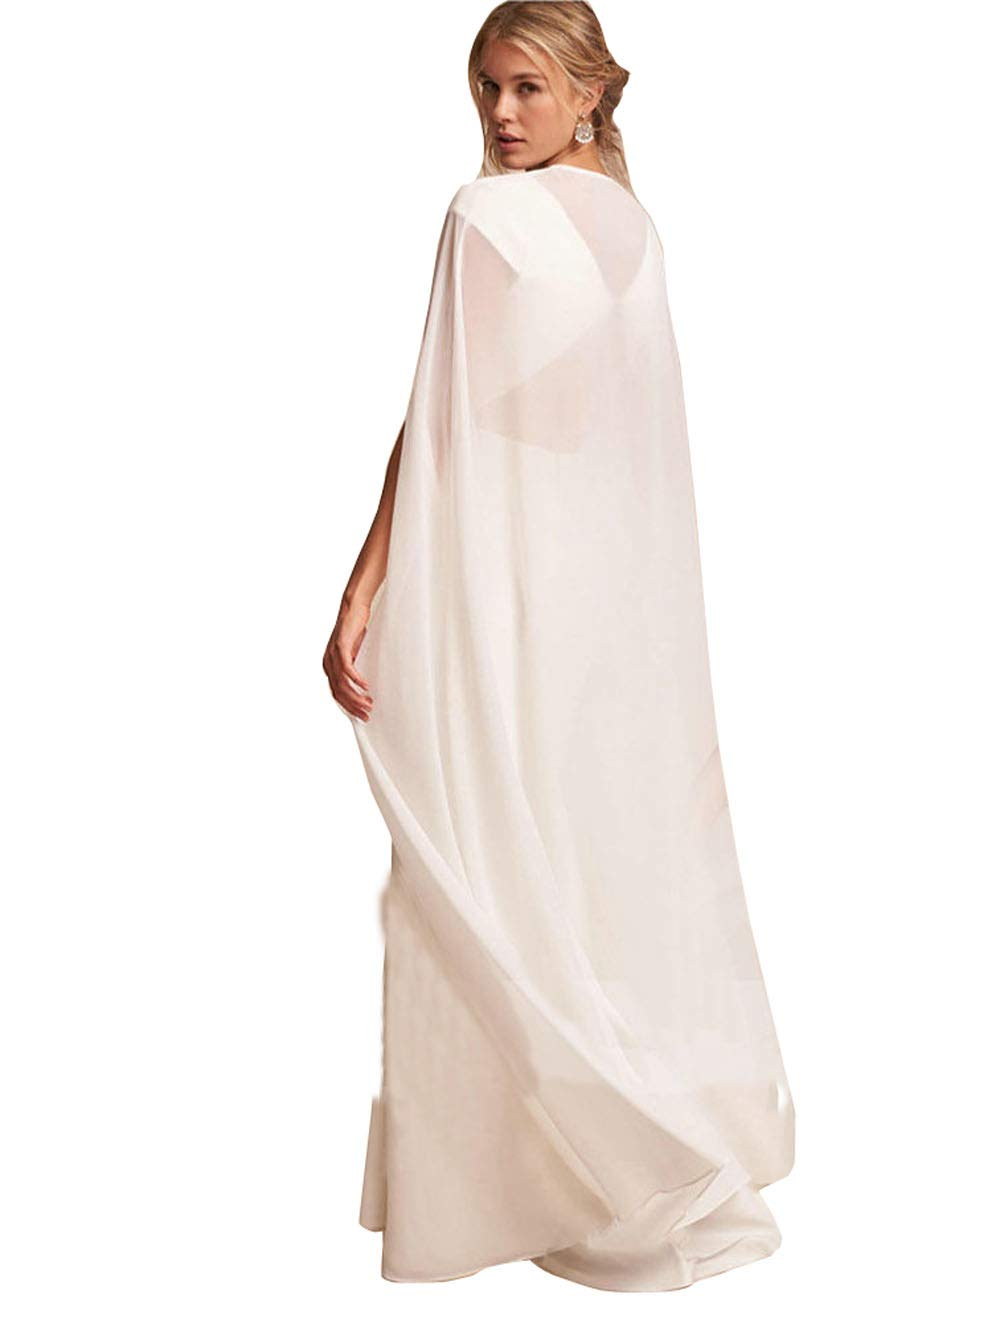 Bridal Wedding Capes Veils Chiffon Bridal Wraps Cathedral Length Wedding Cloak with Arm Hole (white, L)